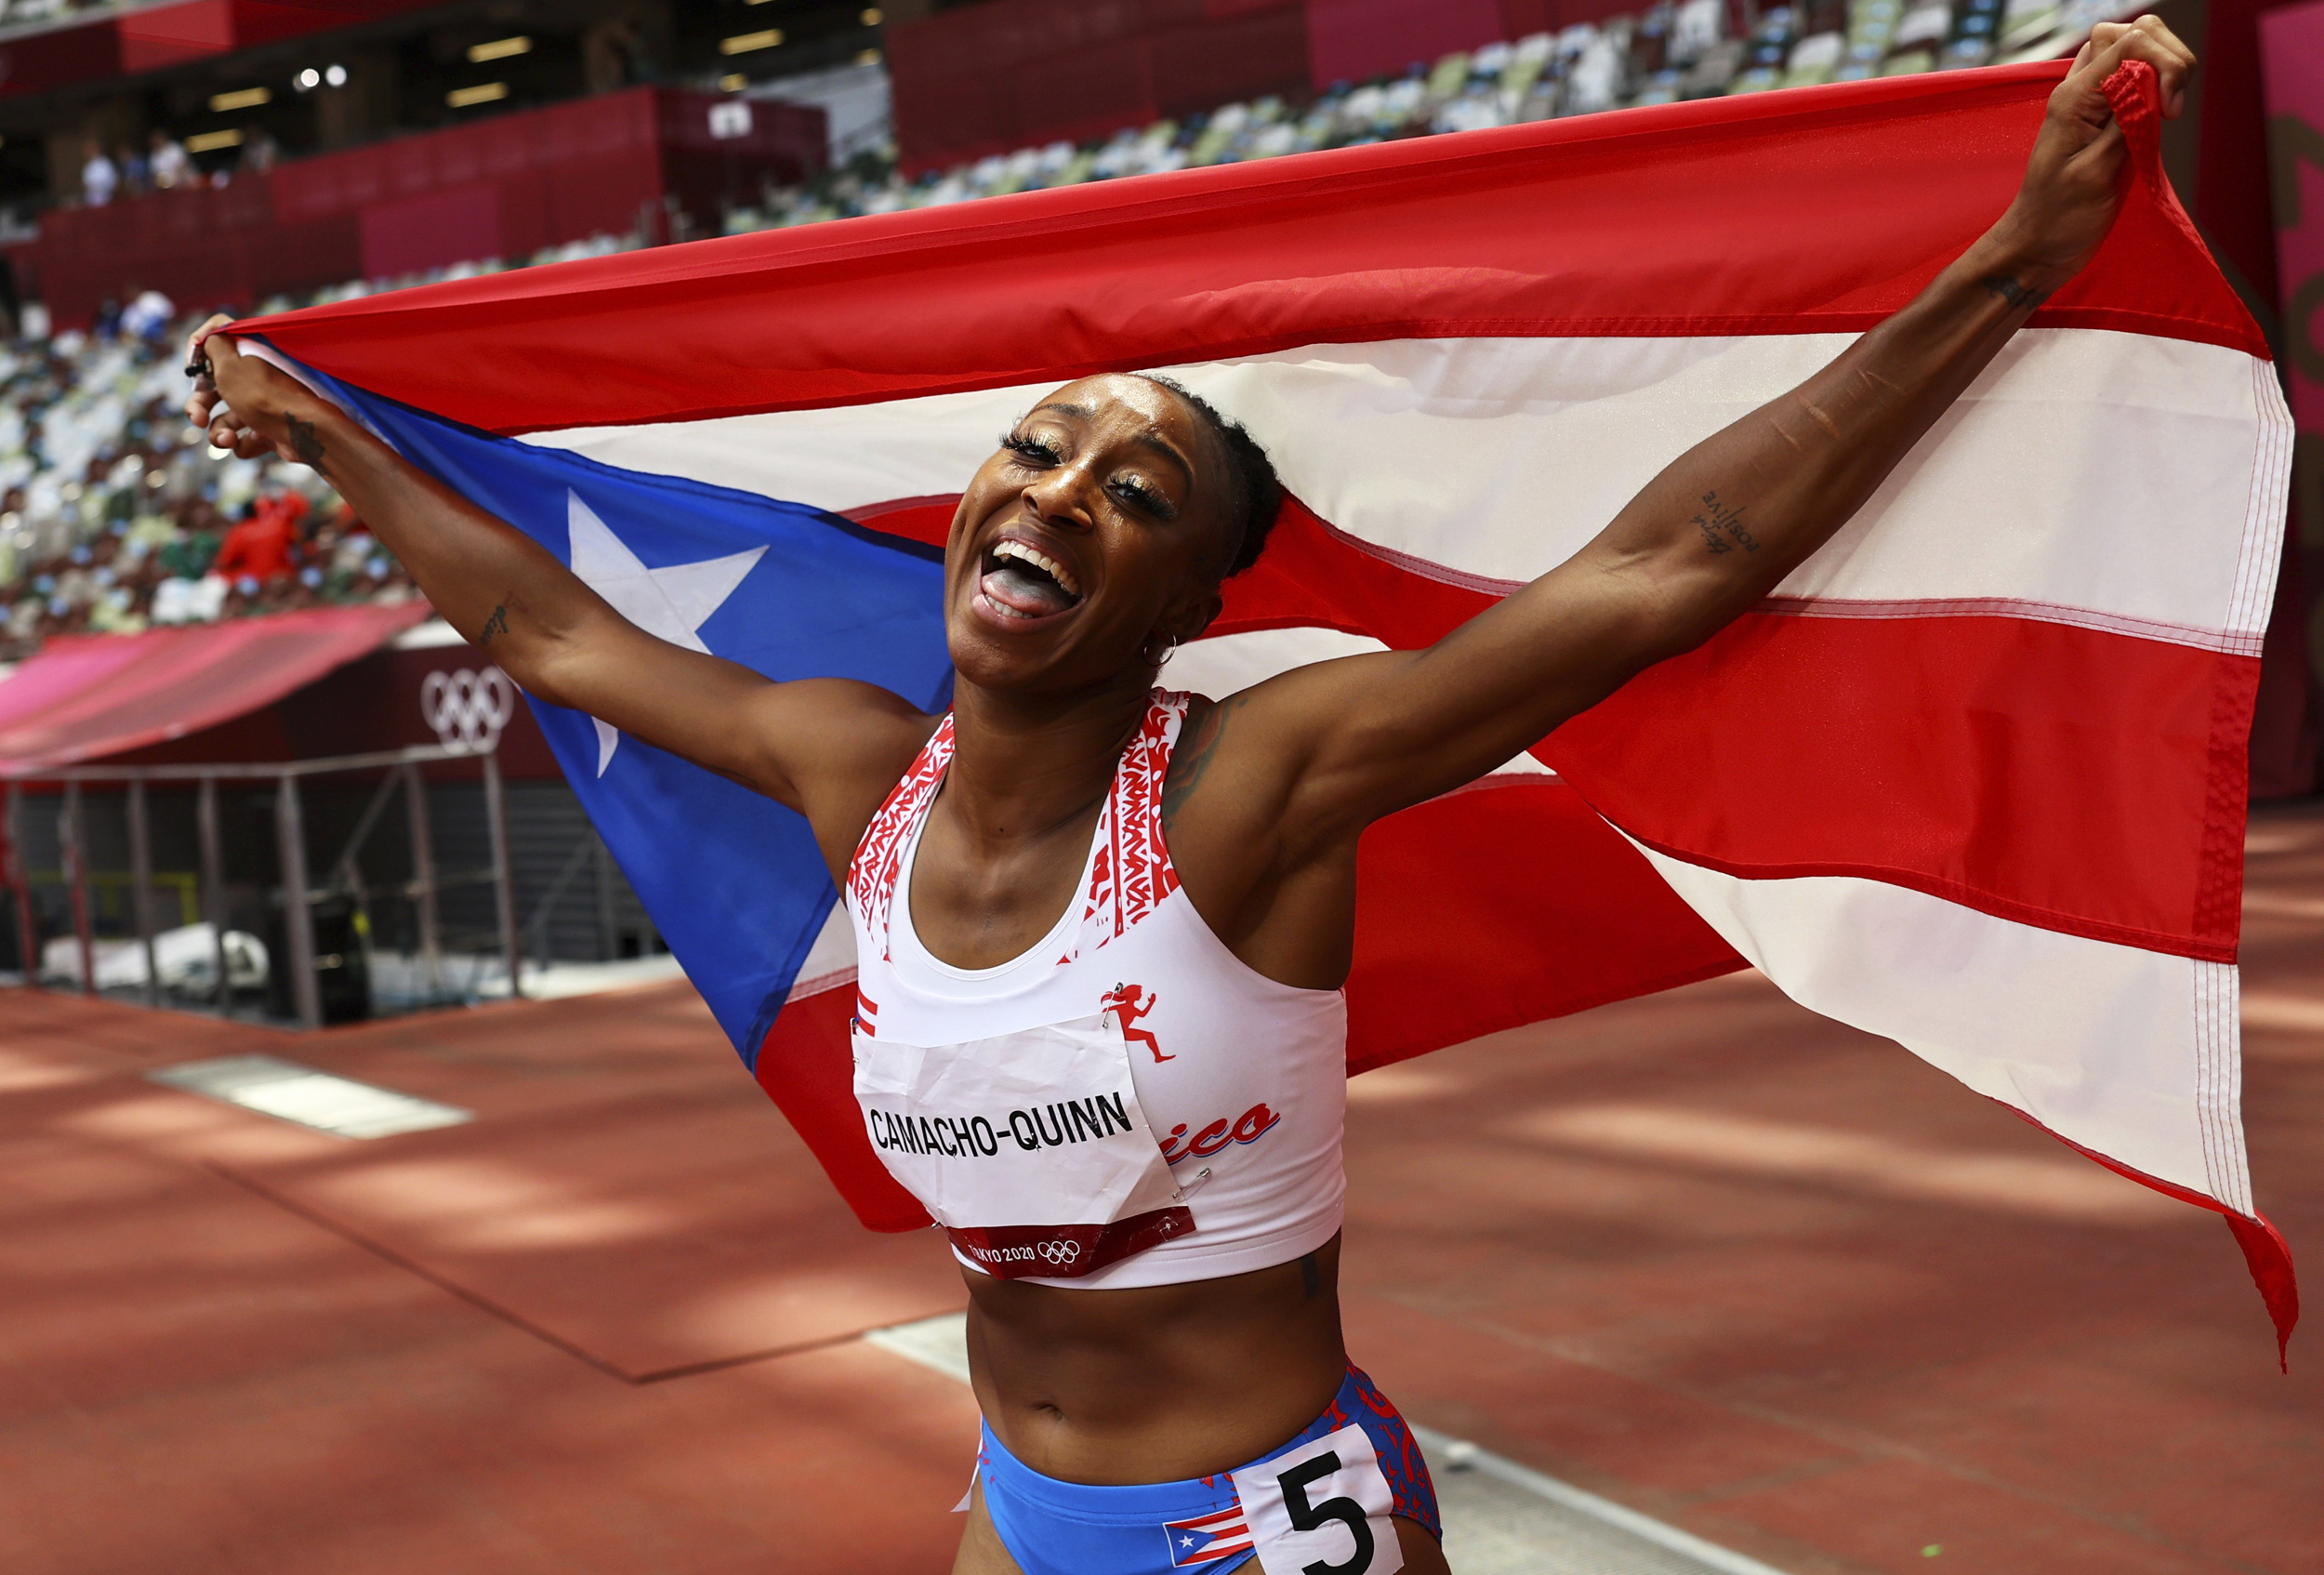 Puerto Rico celebrates Olympic gold with Camacho-Quinn in women's 100m hurdles